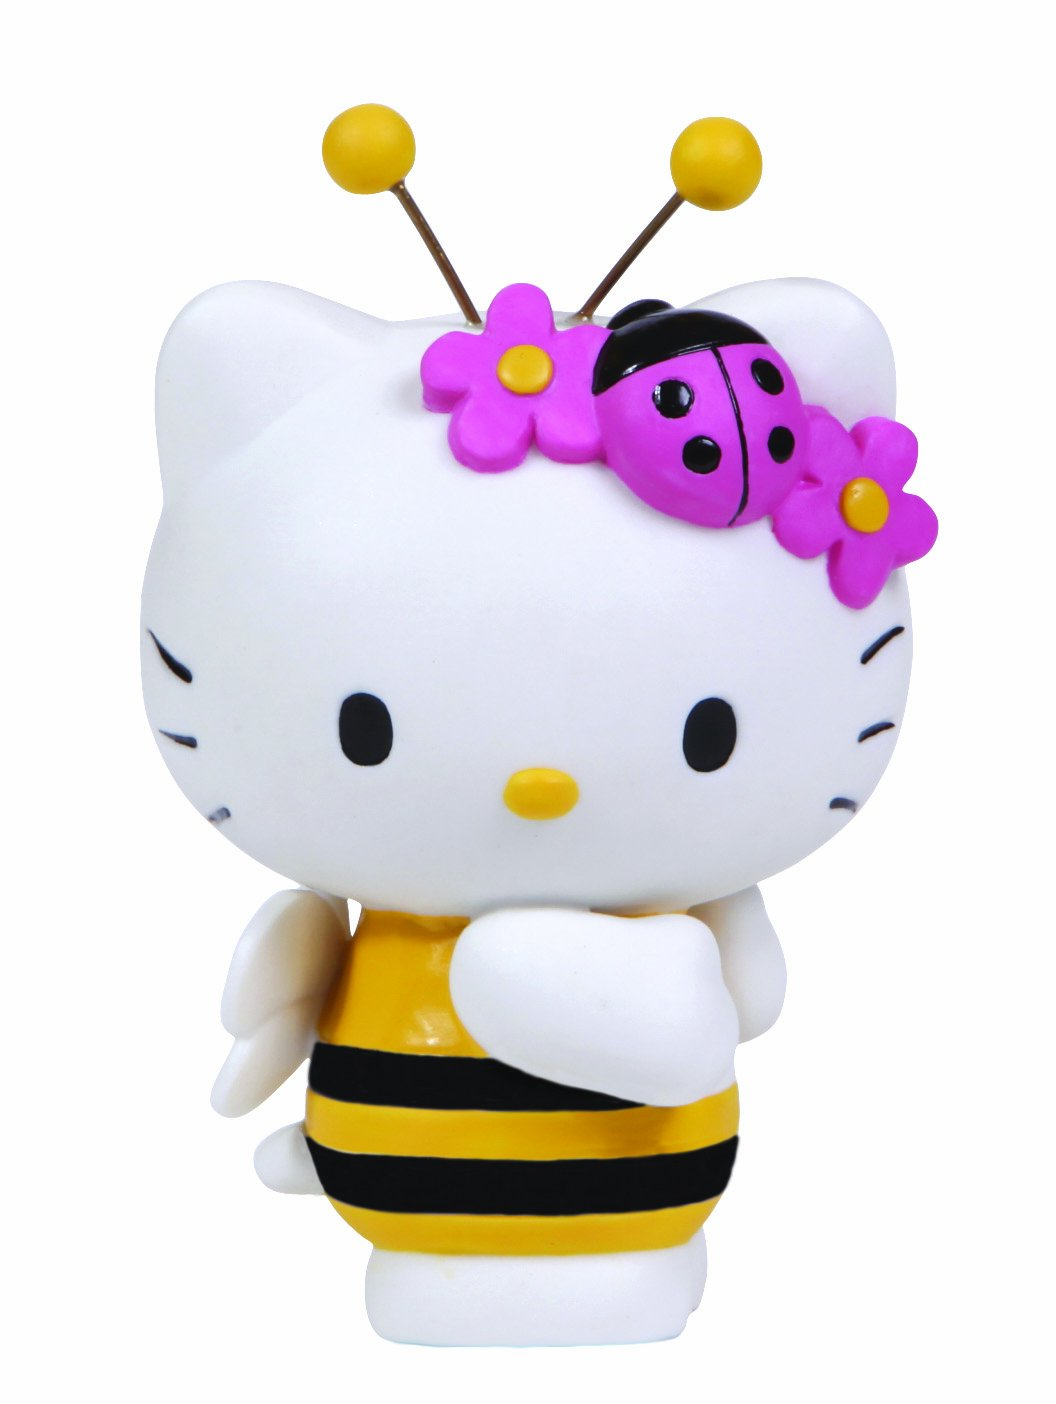 15 Precious Moments of Hello Kitty